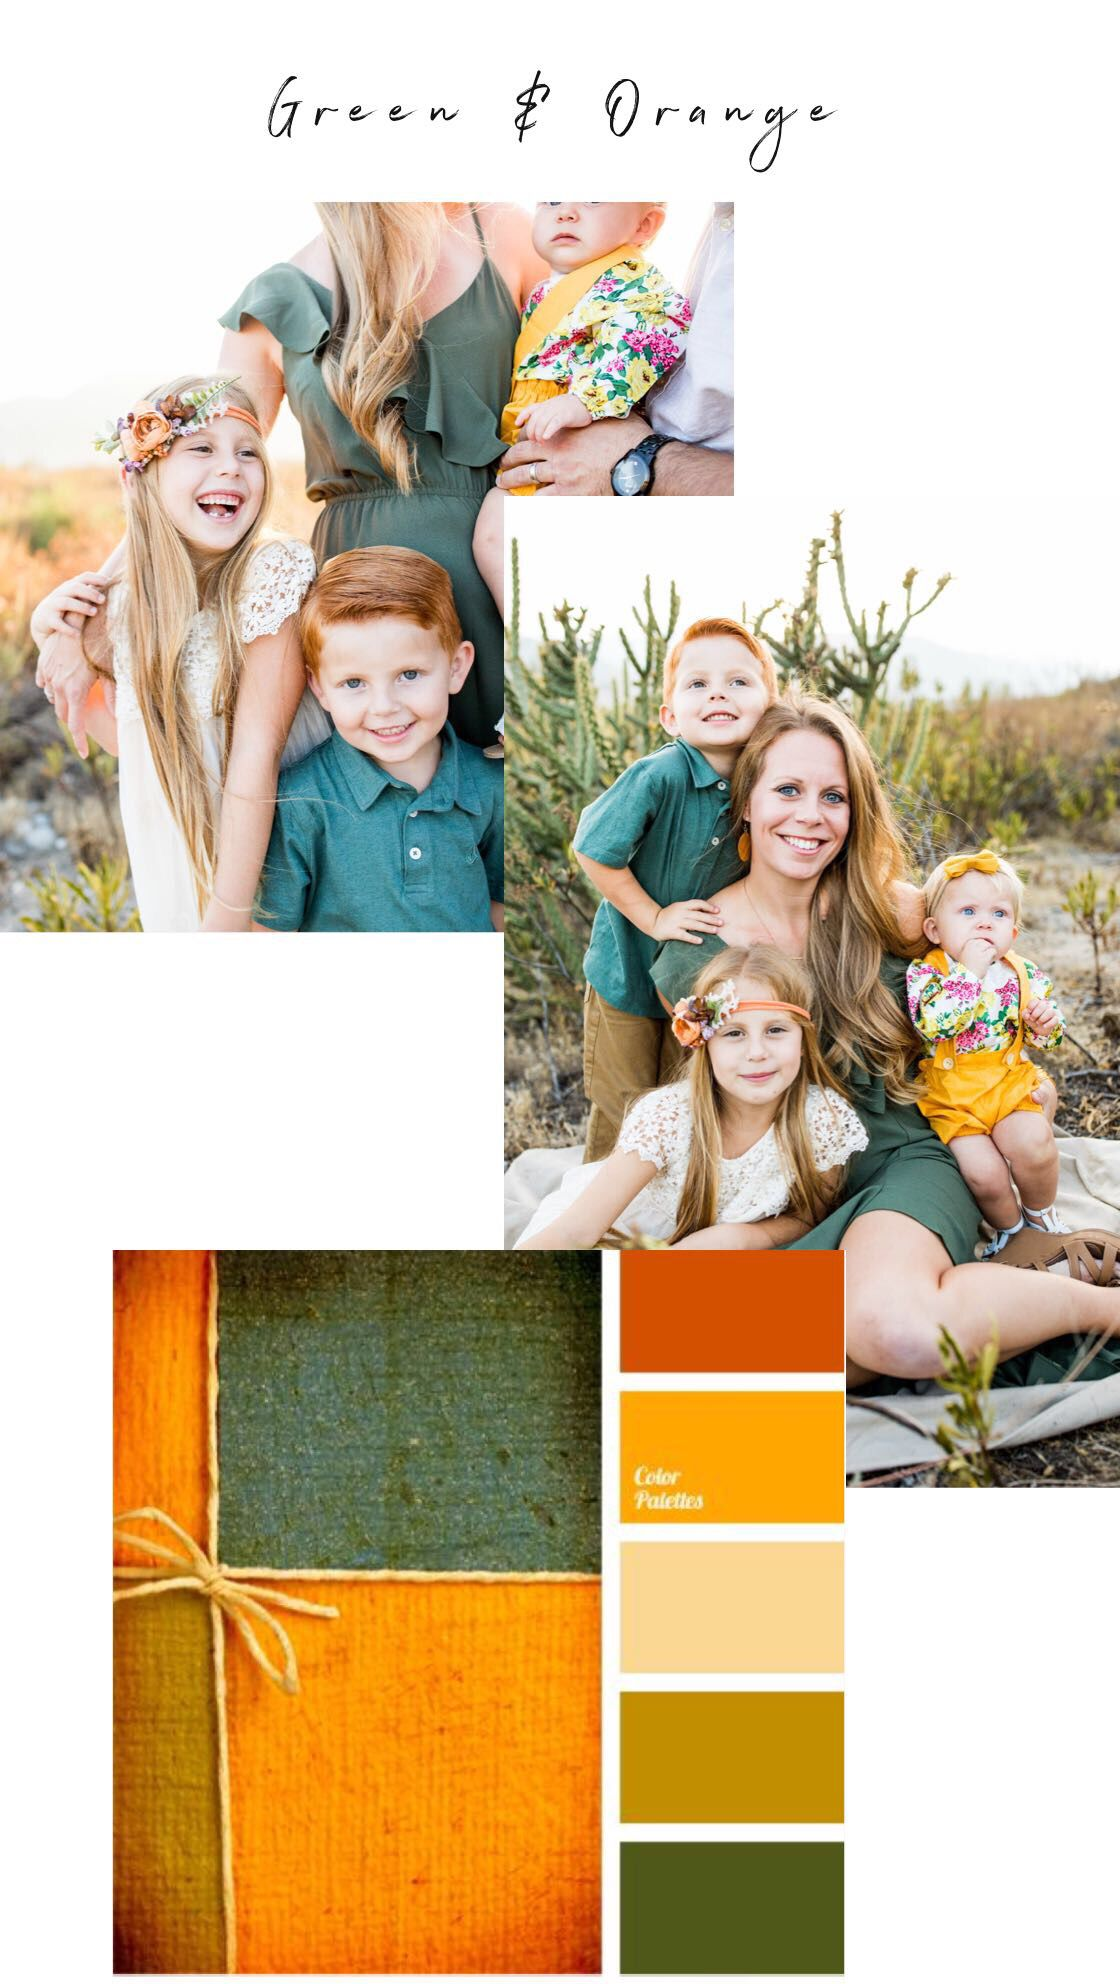 Green And Orange Family Outfits Family Picture Colors Picture Color Schemes Home Depot Exterior Paint